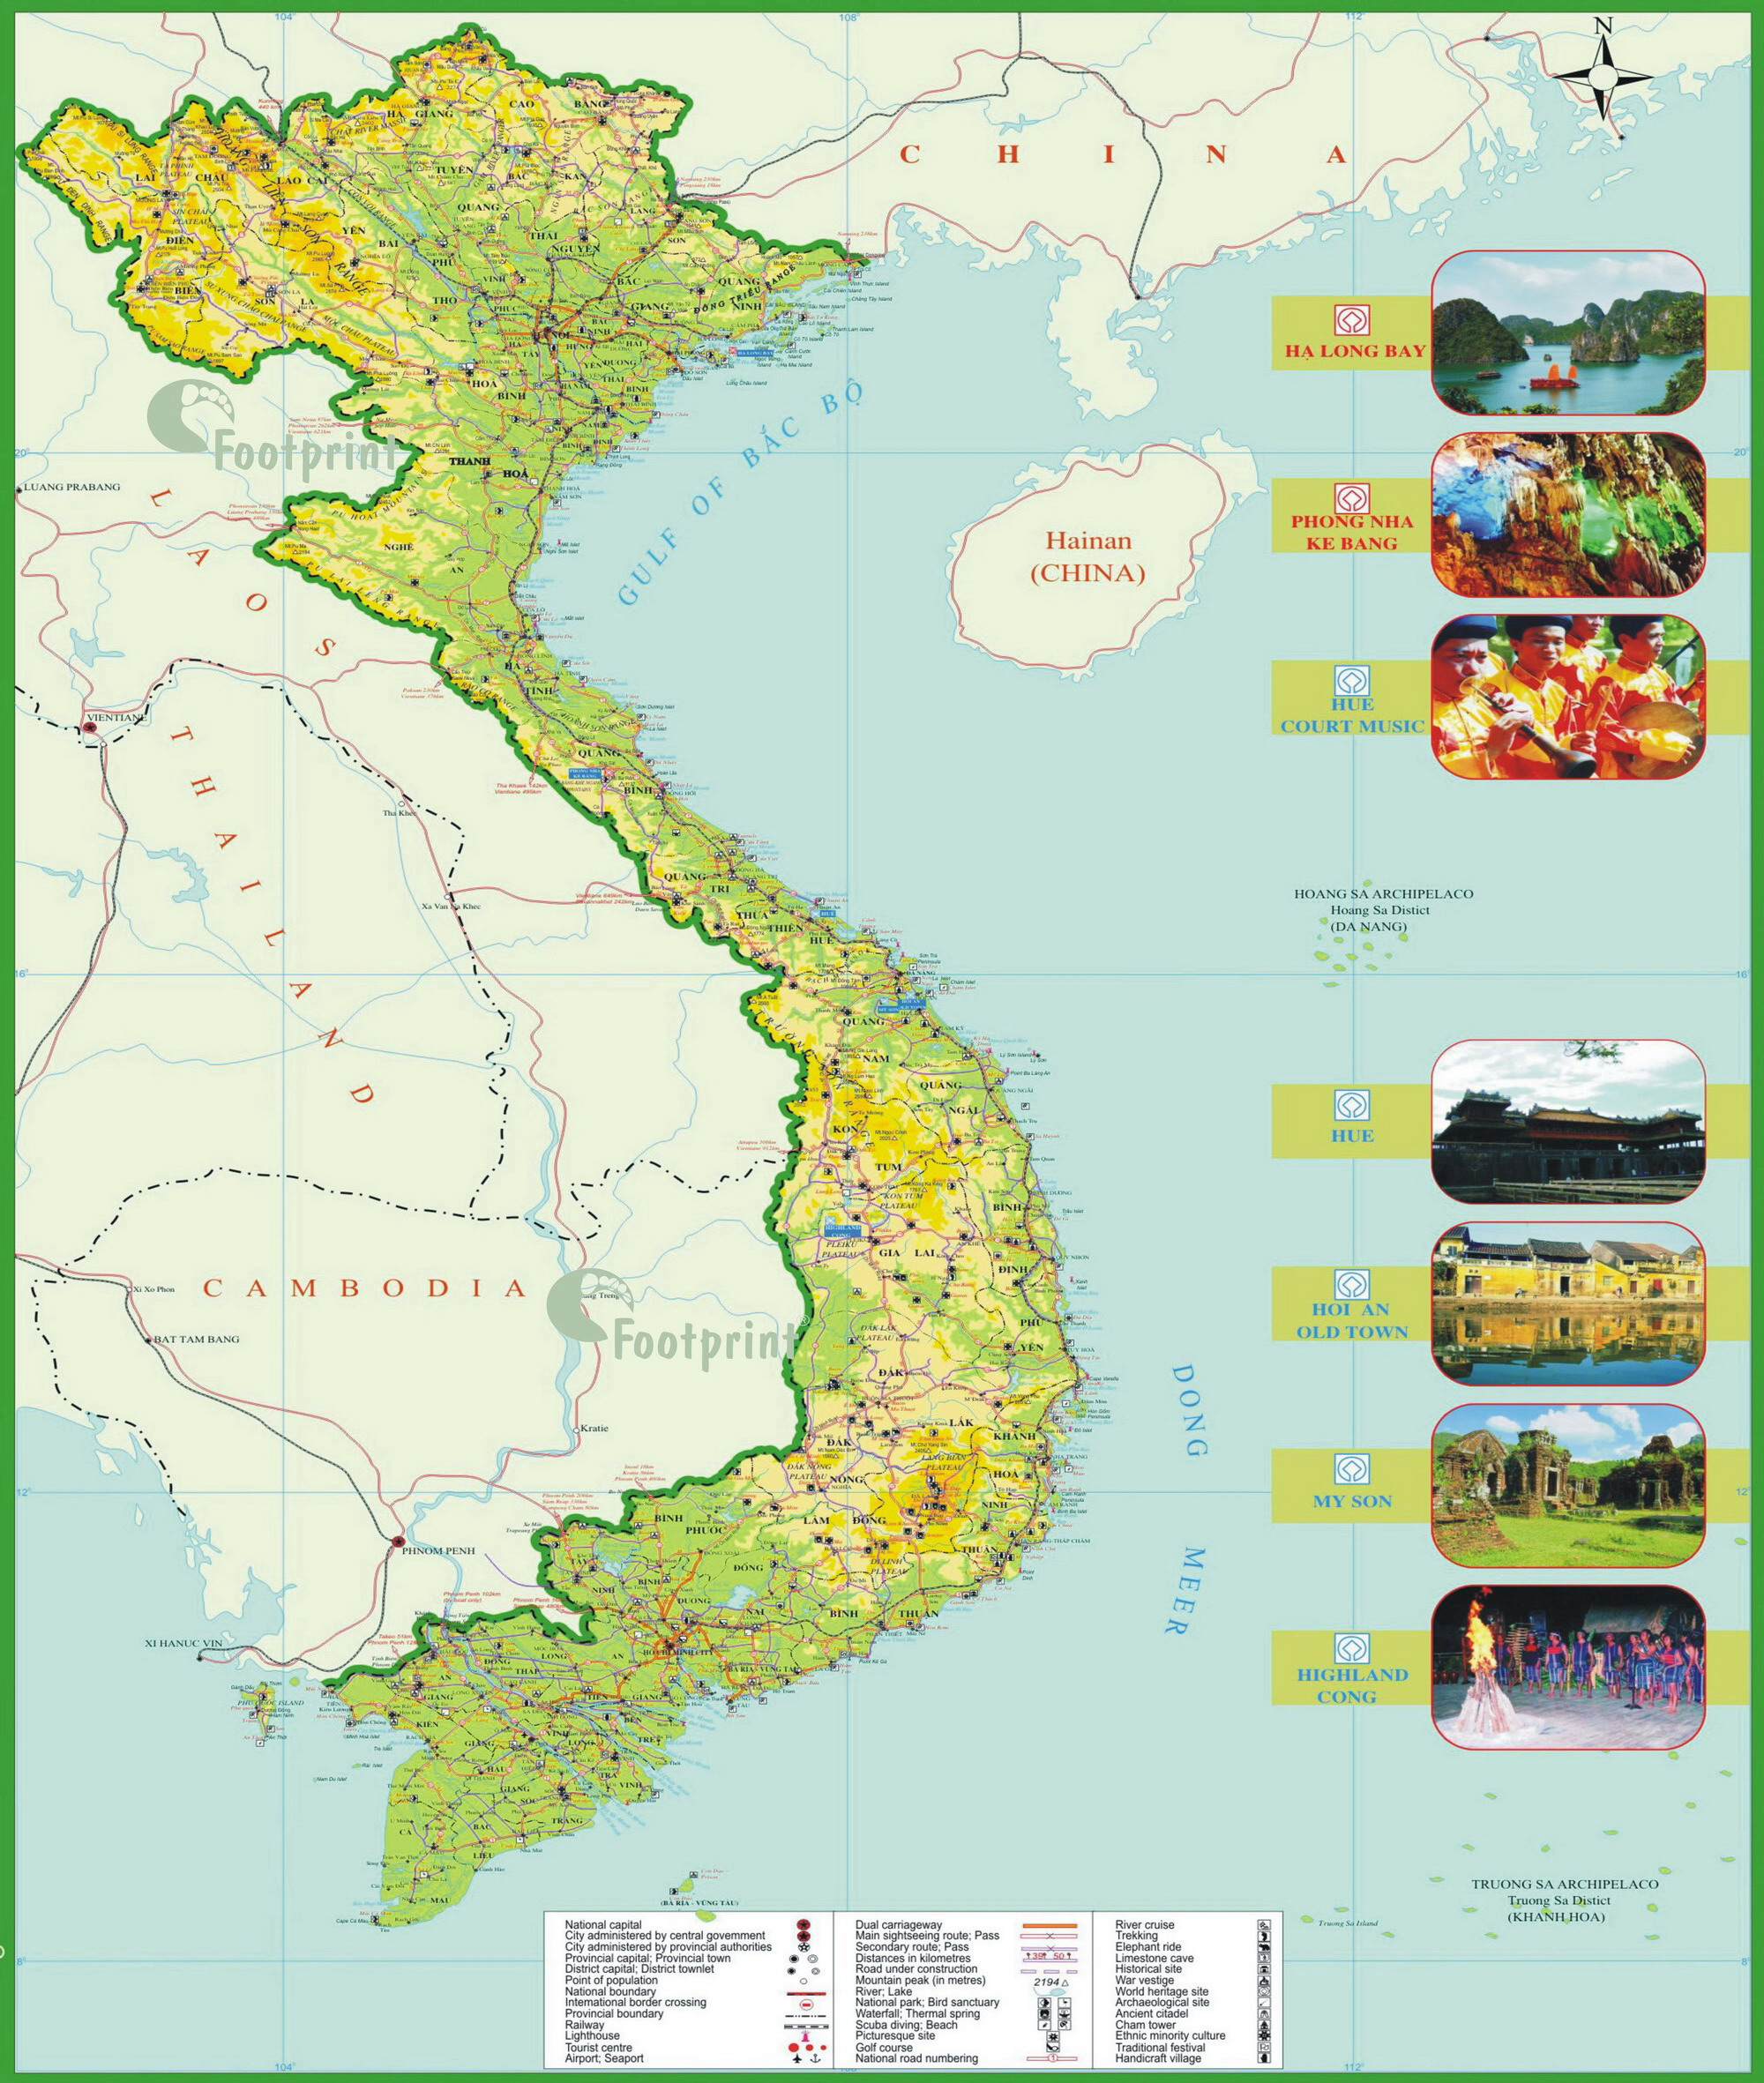 Vietnam Map Vietnam mappery